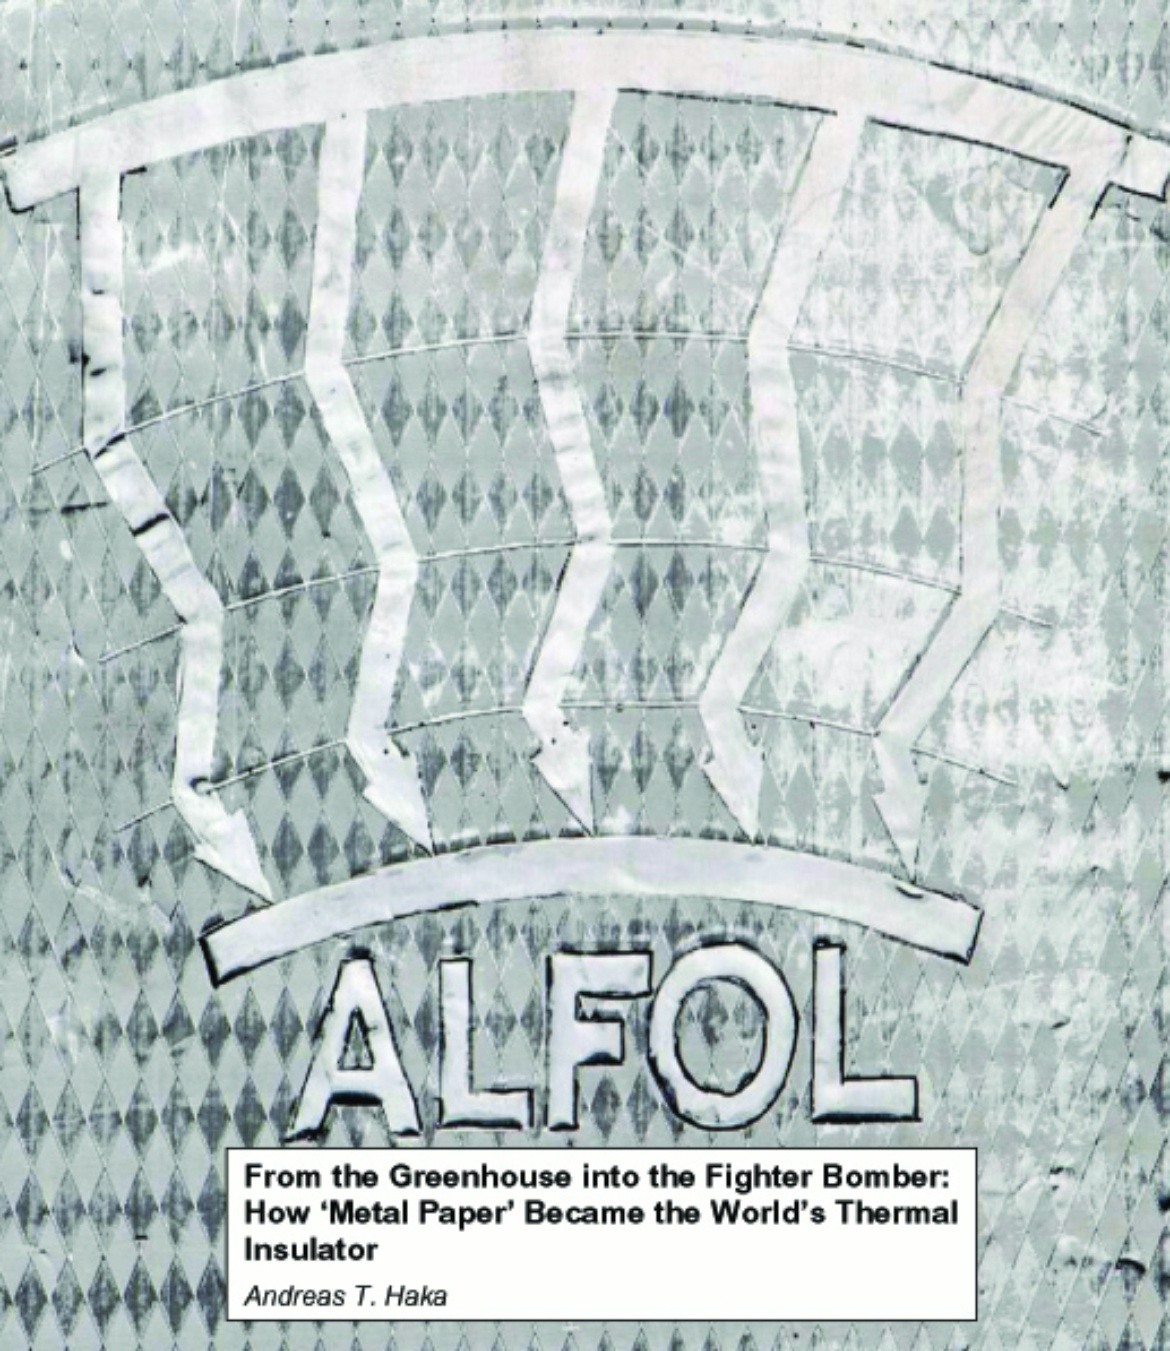 From the Greenhouse into the Fighter Bomber. How 'Metal Paper' Became the World's Thermal Insulator. (c)